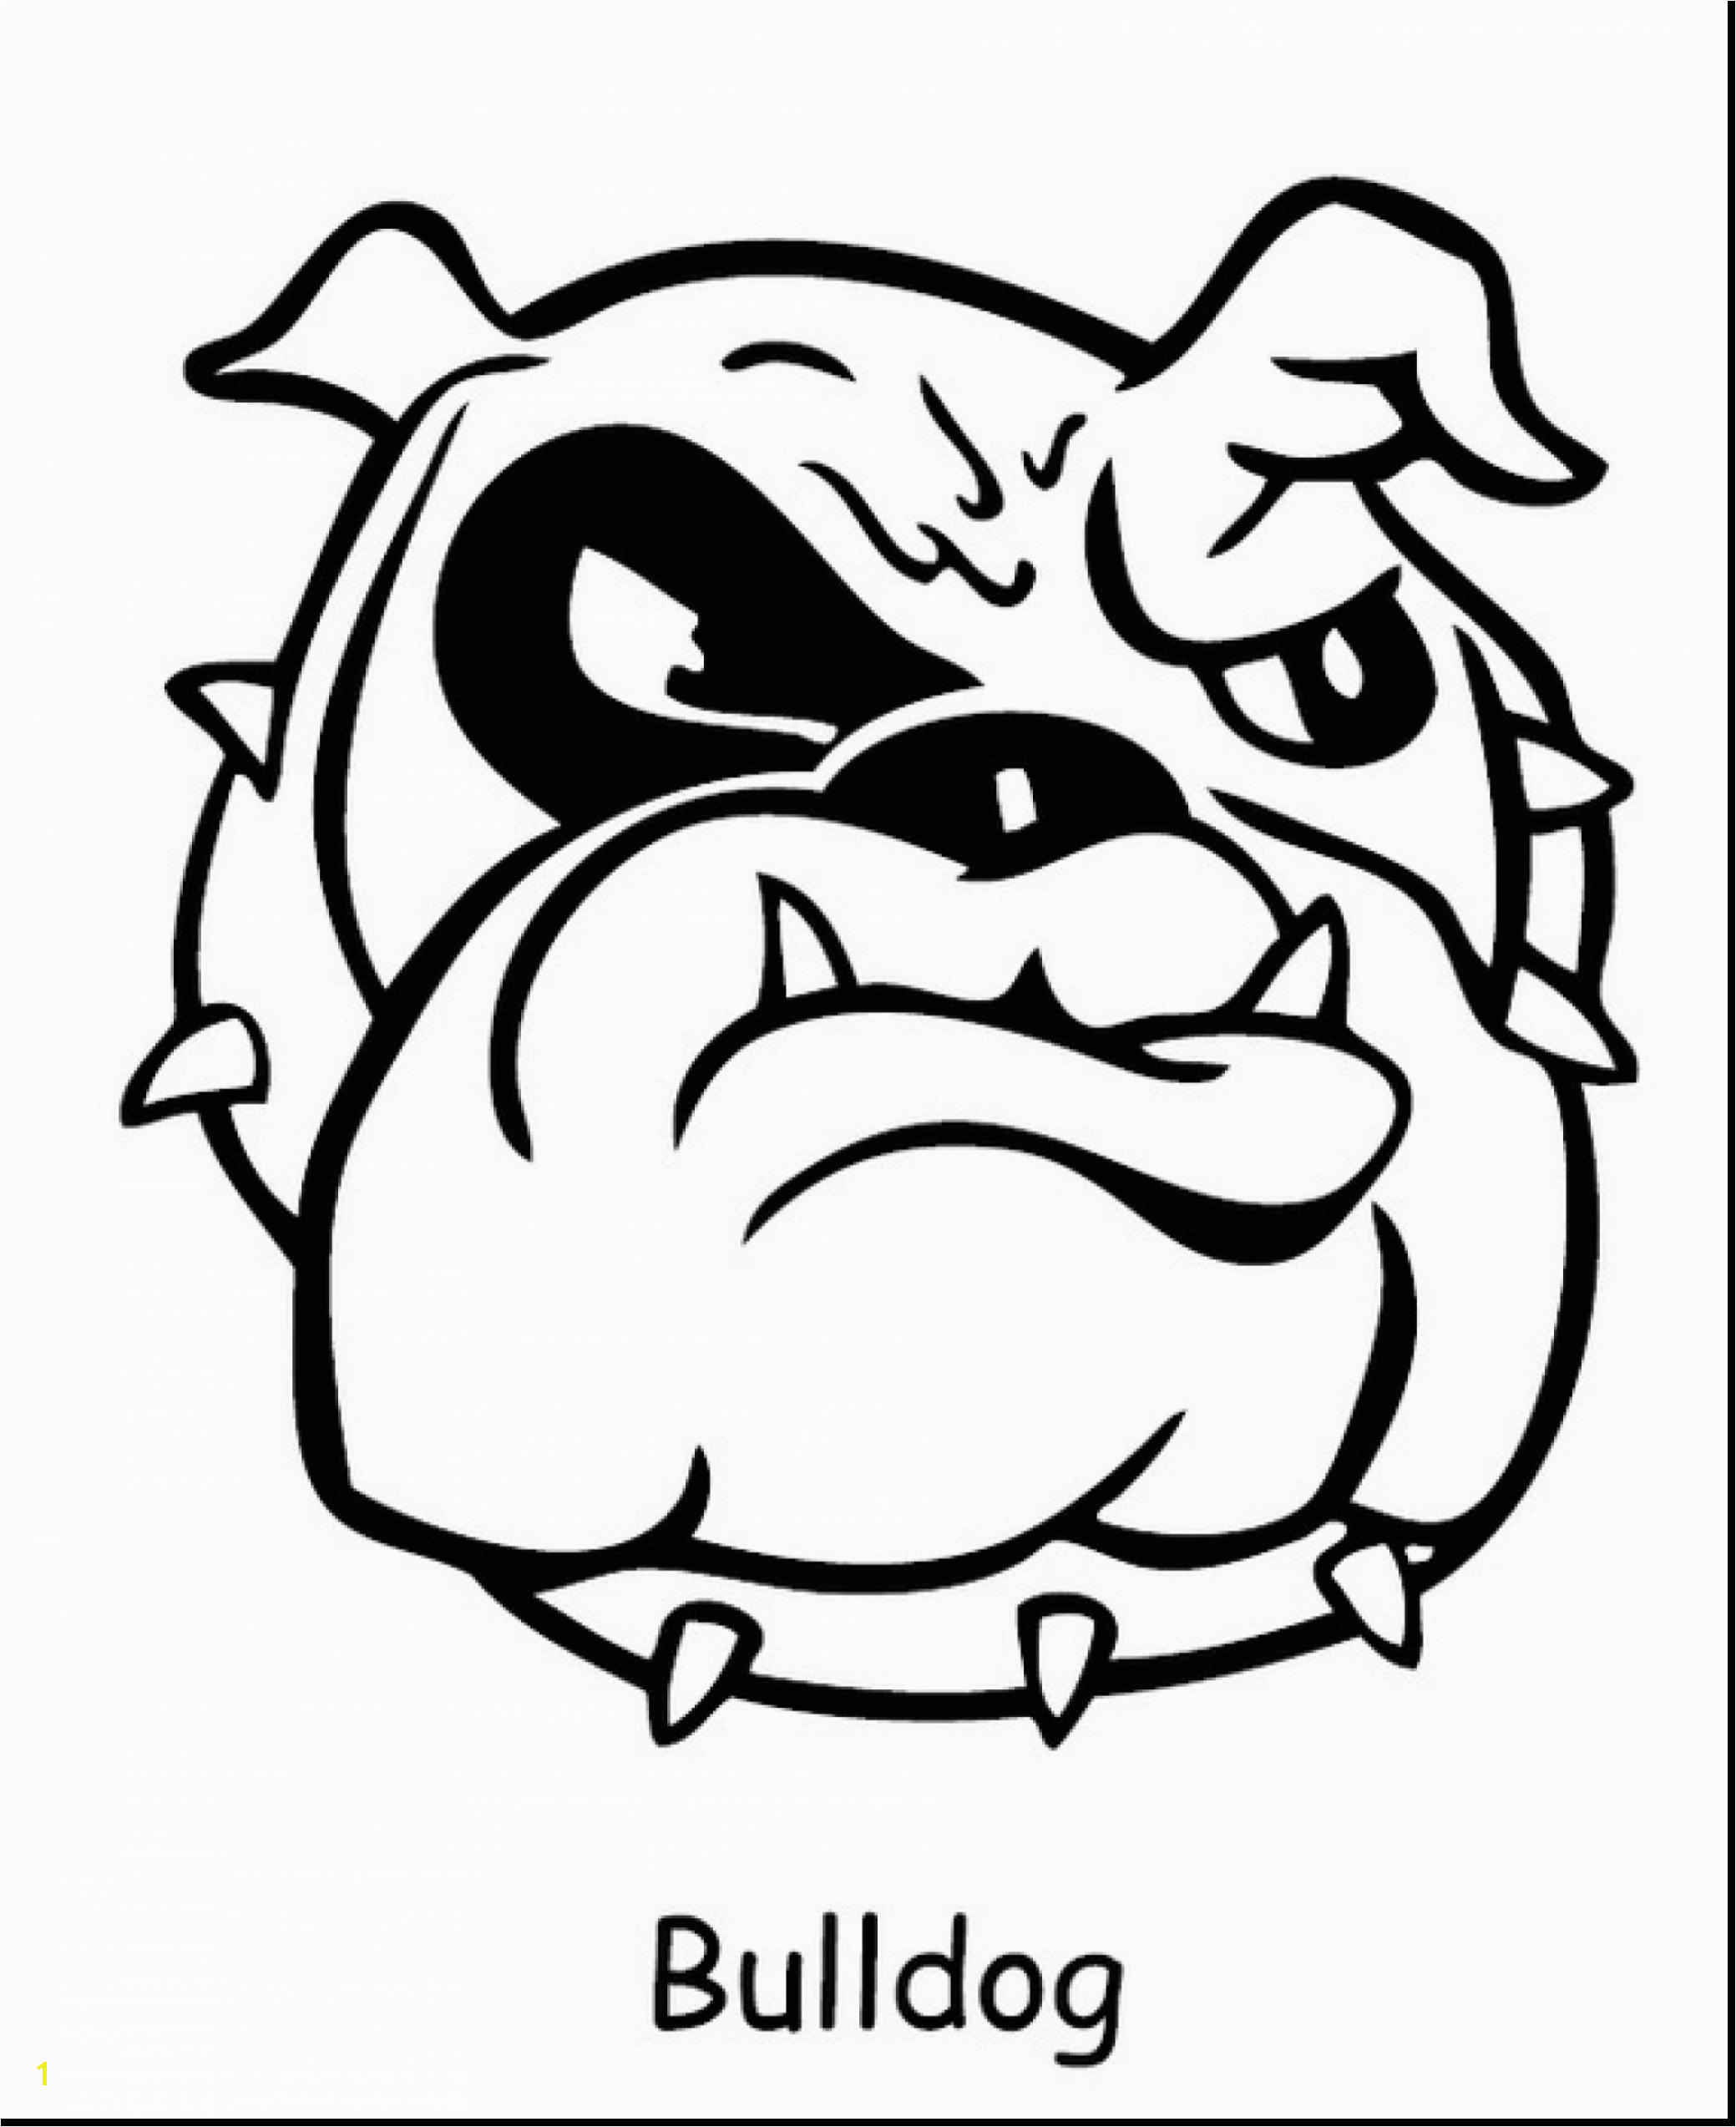 Pug Dog Coloring Pages Bulldog Coloring Pages Fresh Cool Od Dog Coloring Pages Free